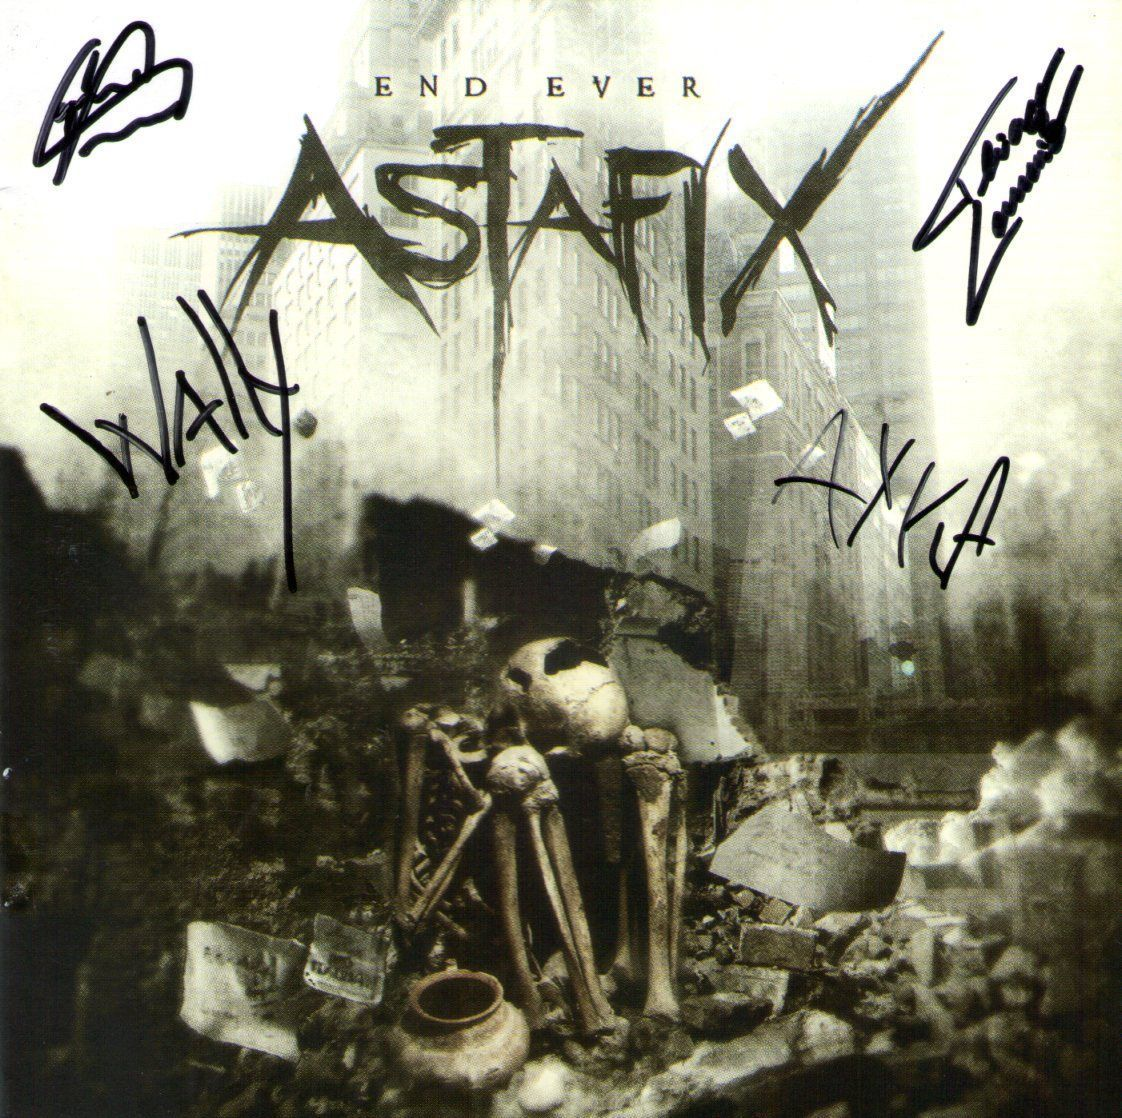 CD – Astafix – End Ever – Autografado